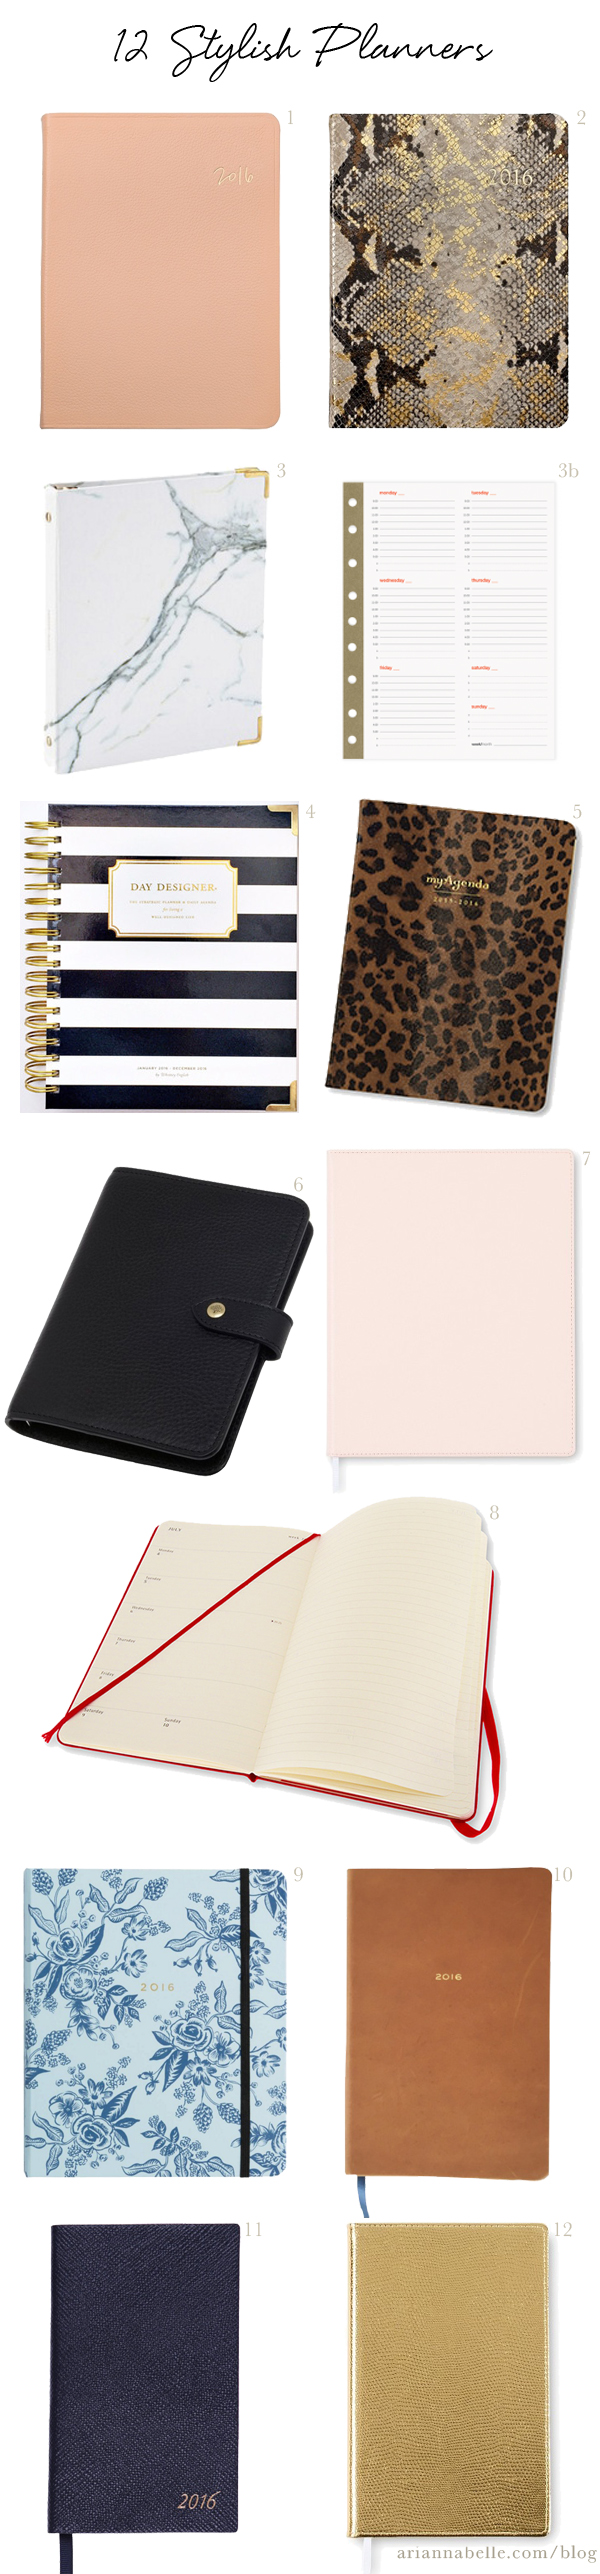 stylish_2016_planners_Arianna_Belle_Blog.jpg